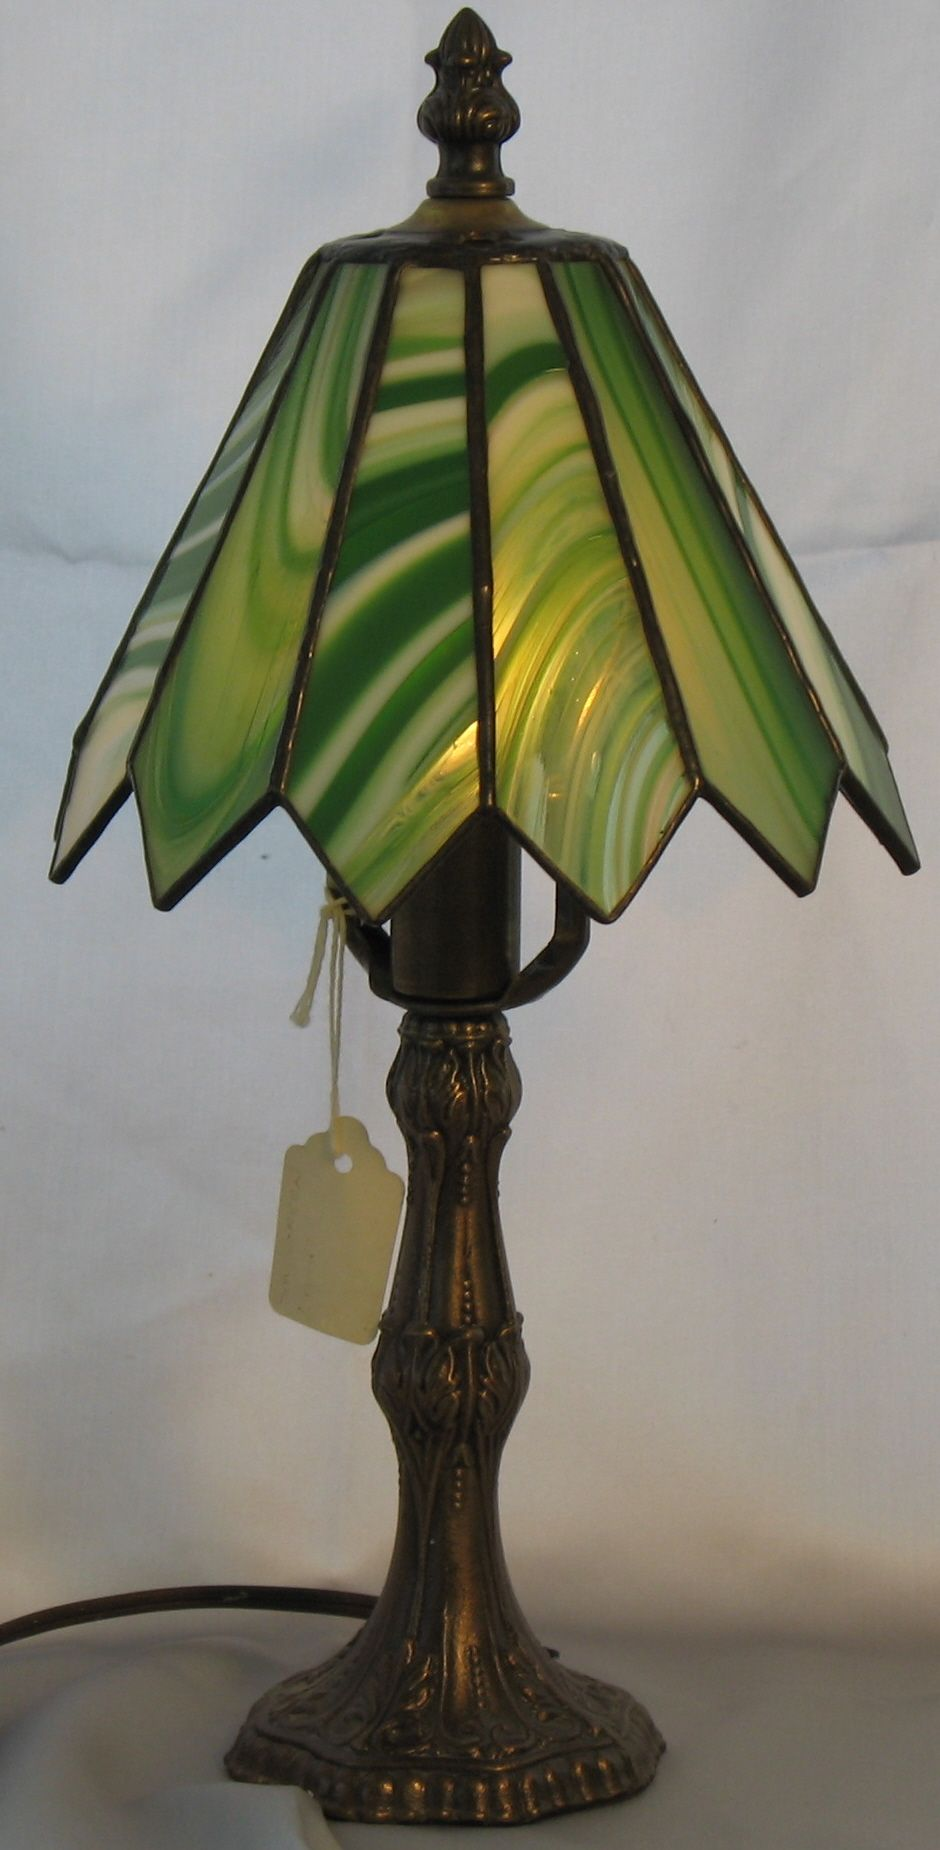 My mom left me some antique 1920s lamps without shades if i can stained glass projects my mom left me some antique 1920s lamps without shades if i can find these mozeypictures Image collections